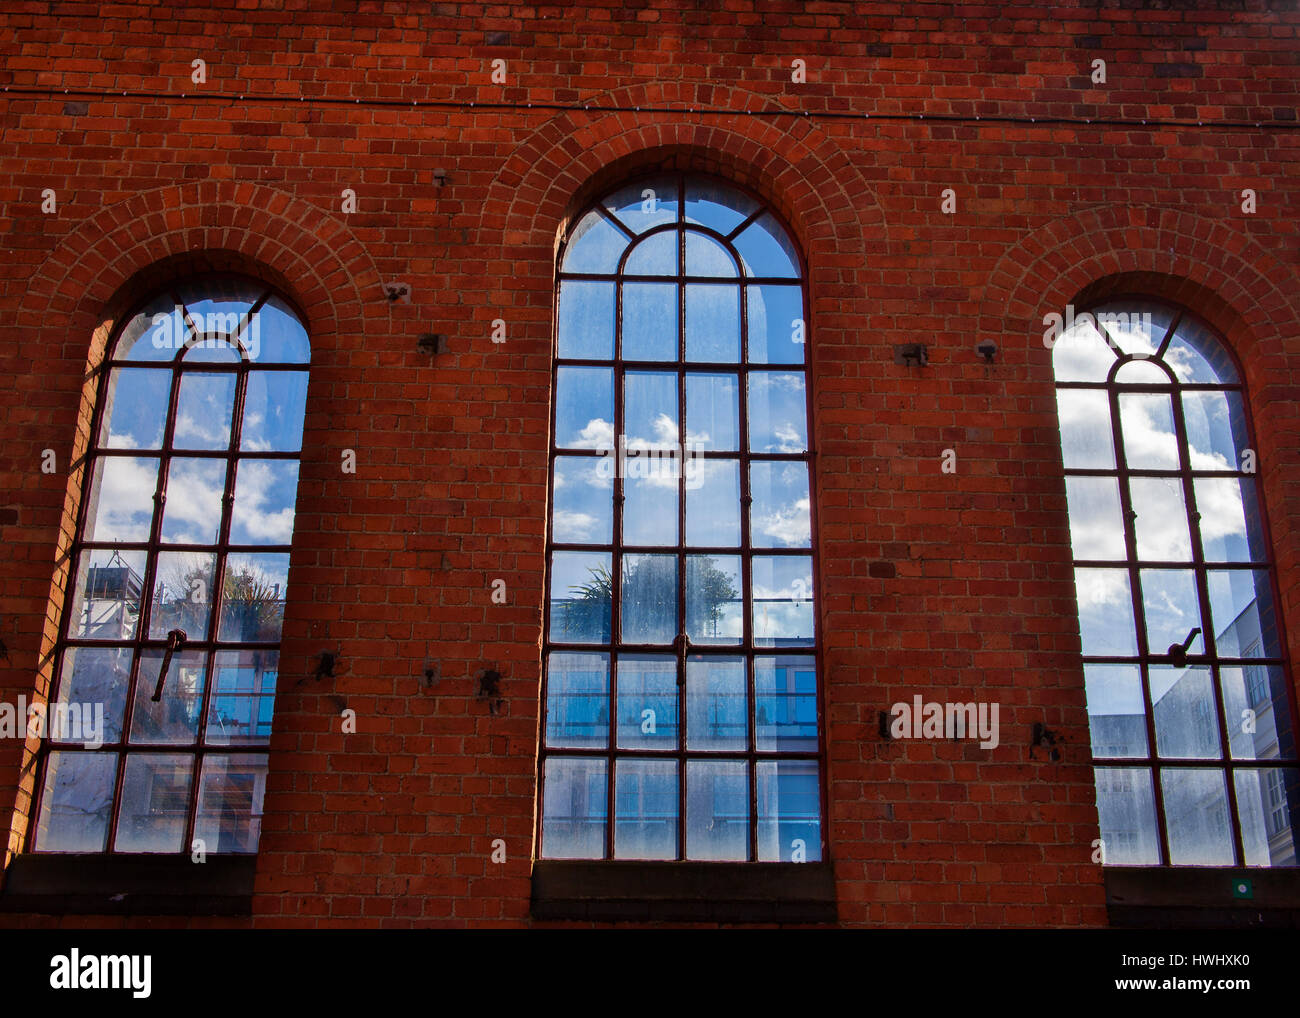 three arched victorian windows showing clouds and sky - Stock Image